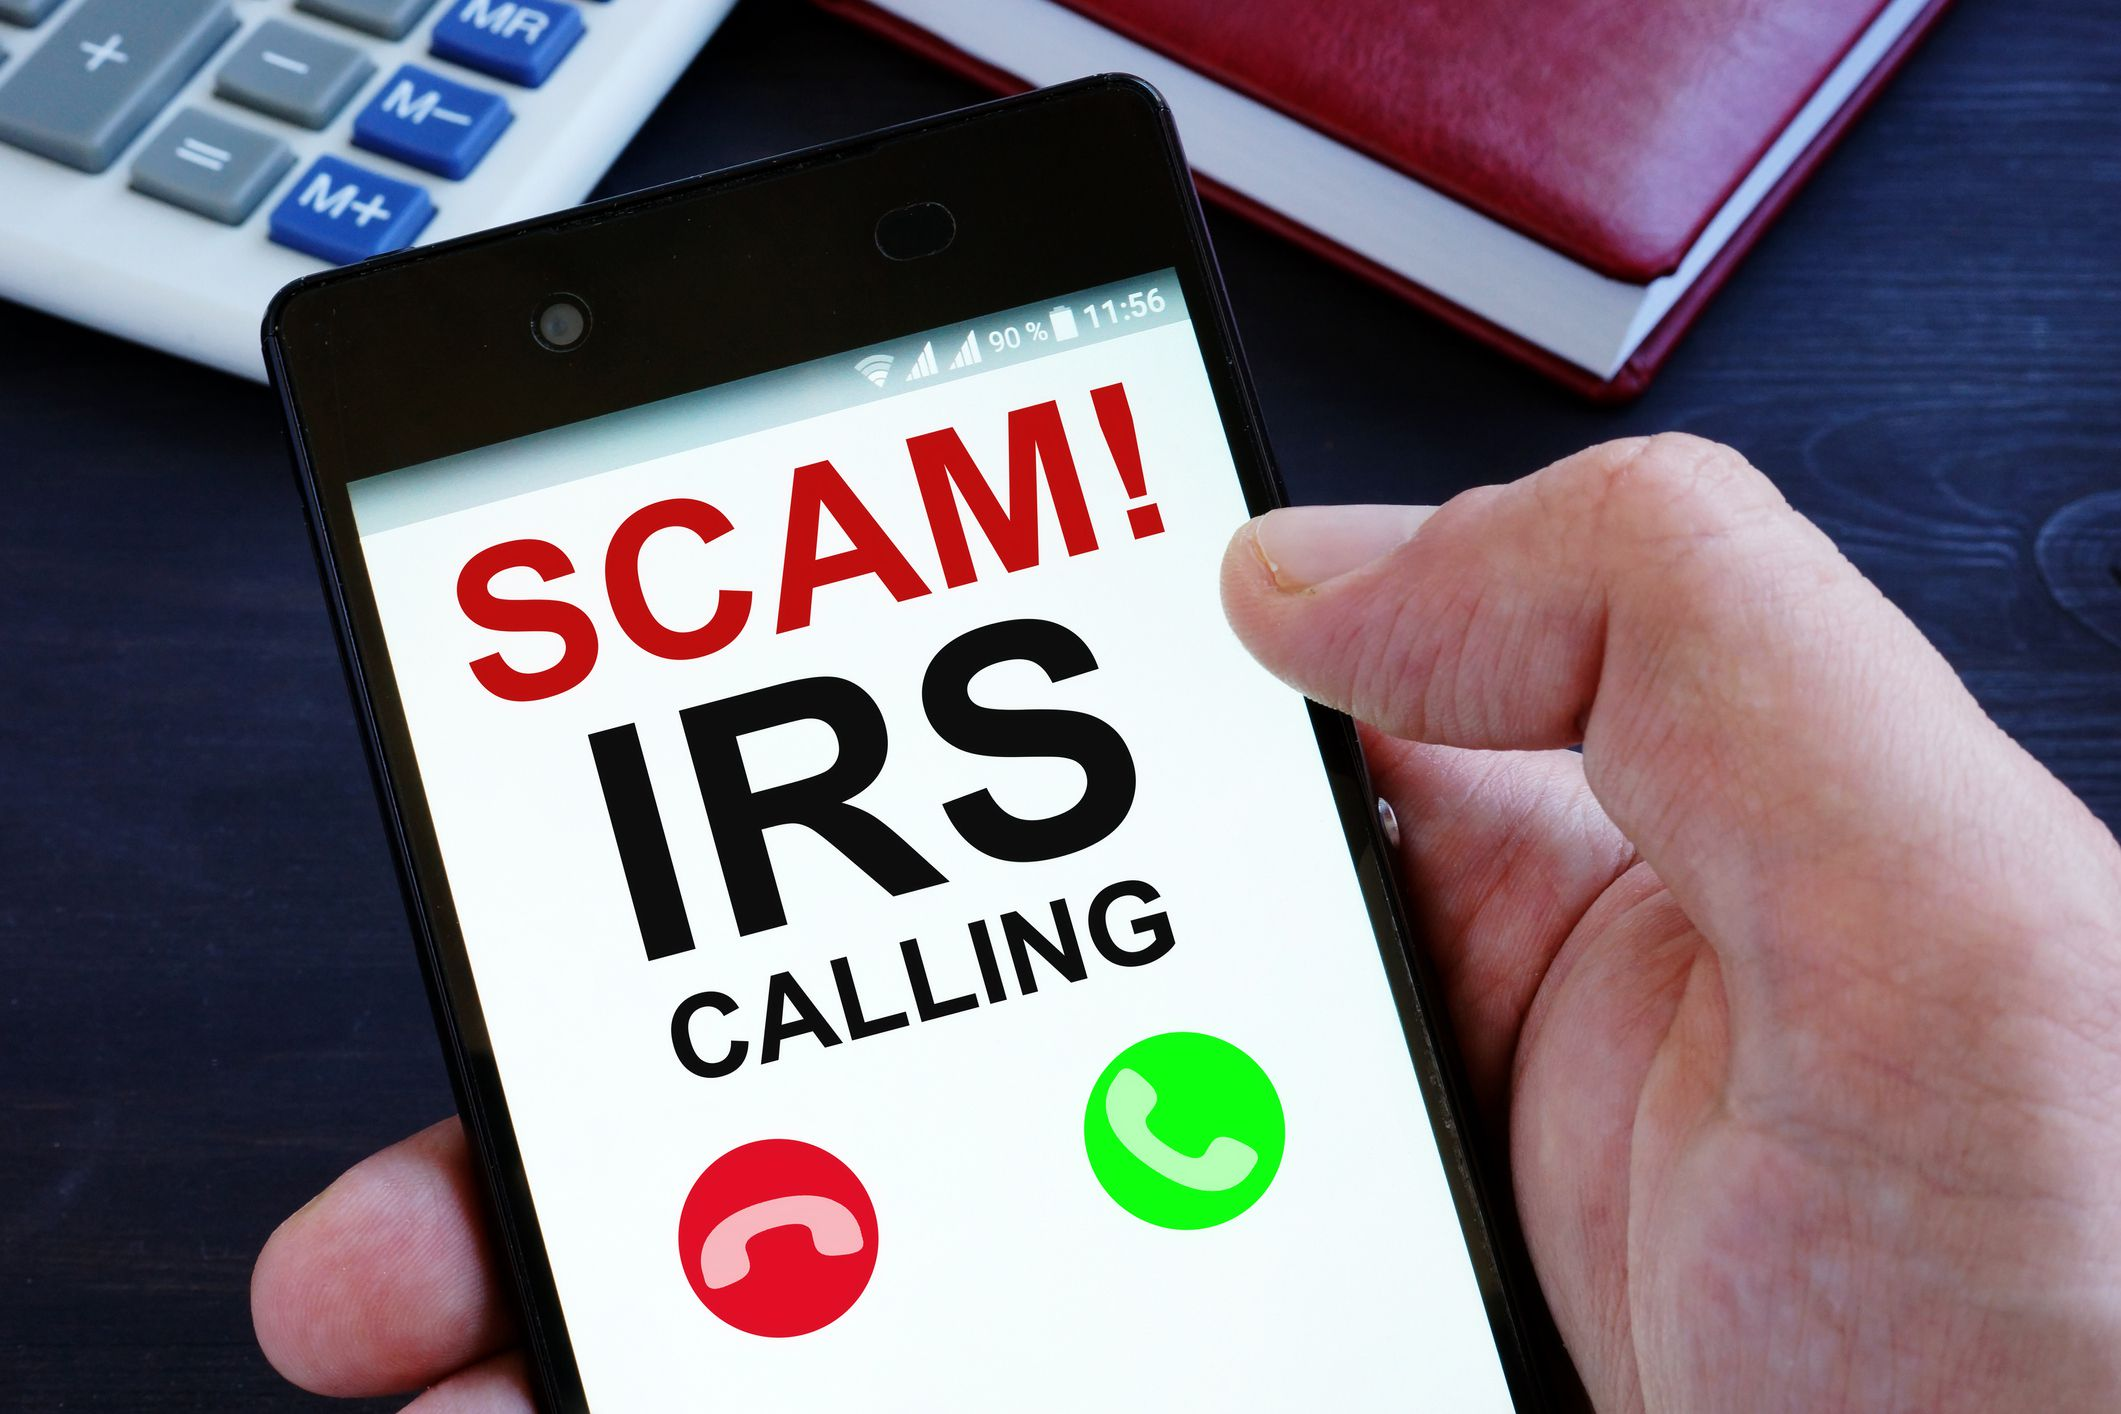 IRS Scam Calls: How to Identify Them and Protect Yourself